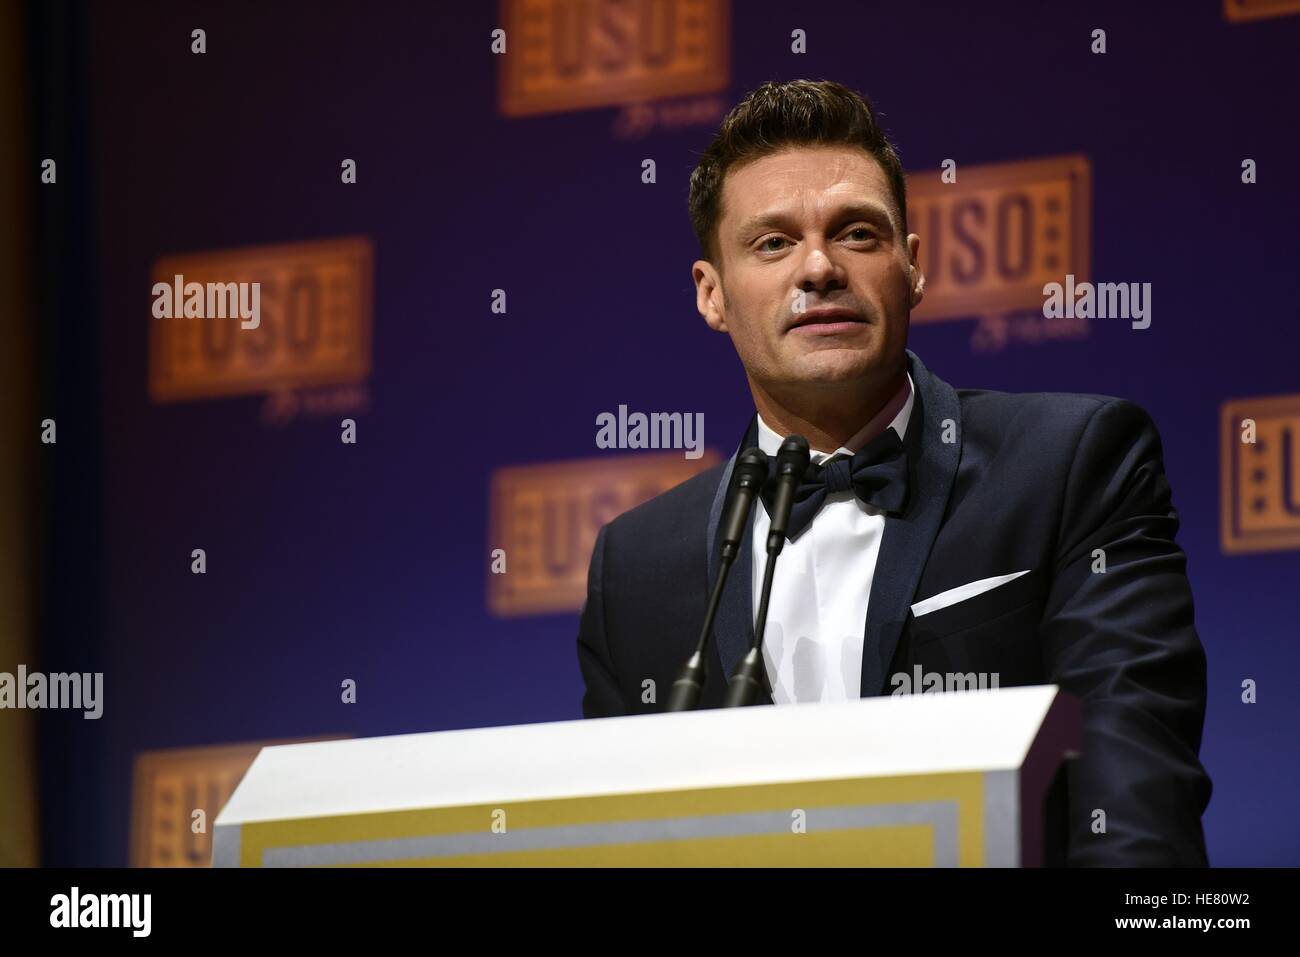 Television and radio personality Ryan Seacrest hosts the USO Gala at the Daughters of the American Revolution Constitution - Stock Image